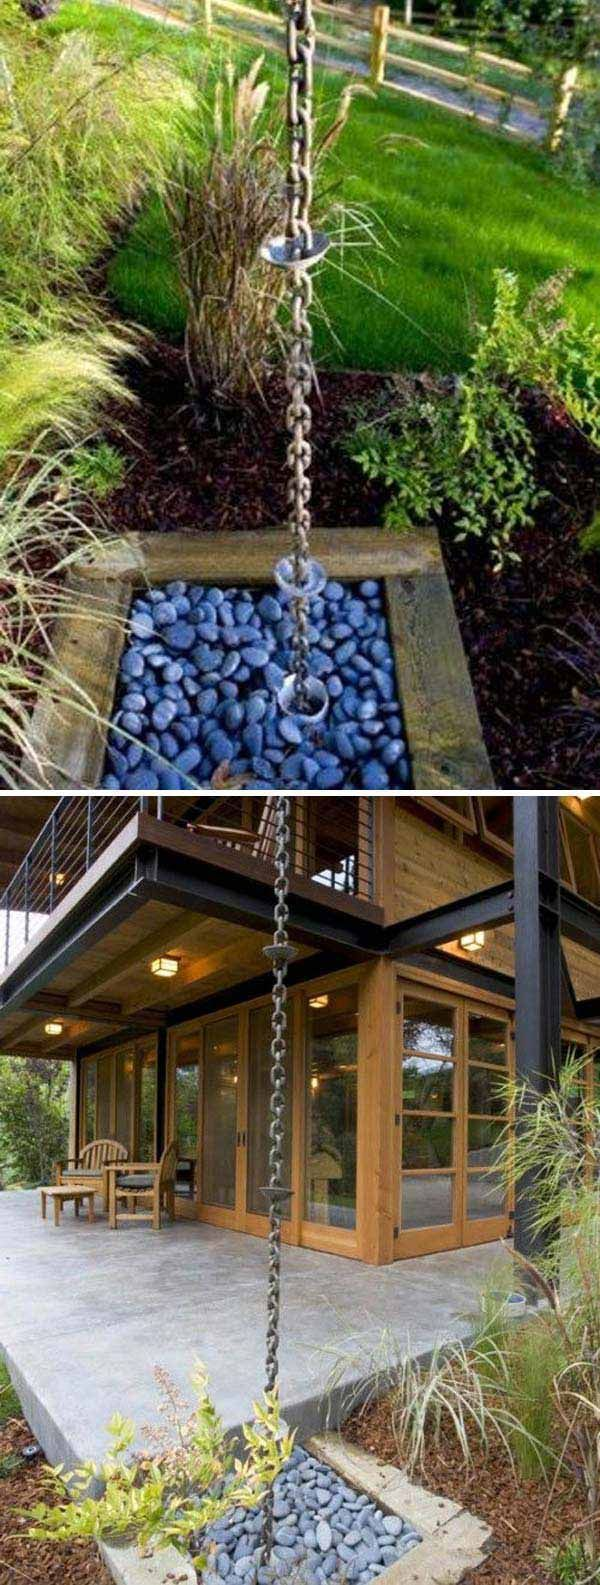 """Do you remember that we had published a greatly popular article """"20 Easy and Cheap DIY Ways to Enhance The Curb Appeal"""" some times ago? we are always trying our best to create fresh and useful contents to help you improve anything about your home. Building a downspout landscaping is that we thought of it […] #furnitureideascheap #landscapediycheapcurbappeal"""